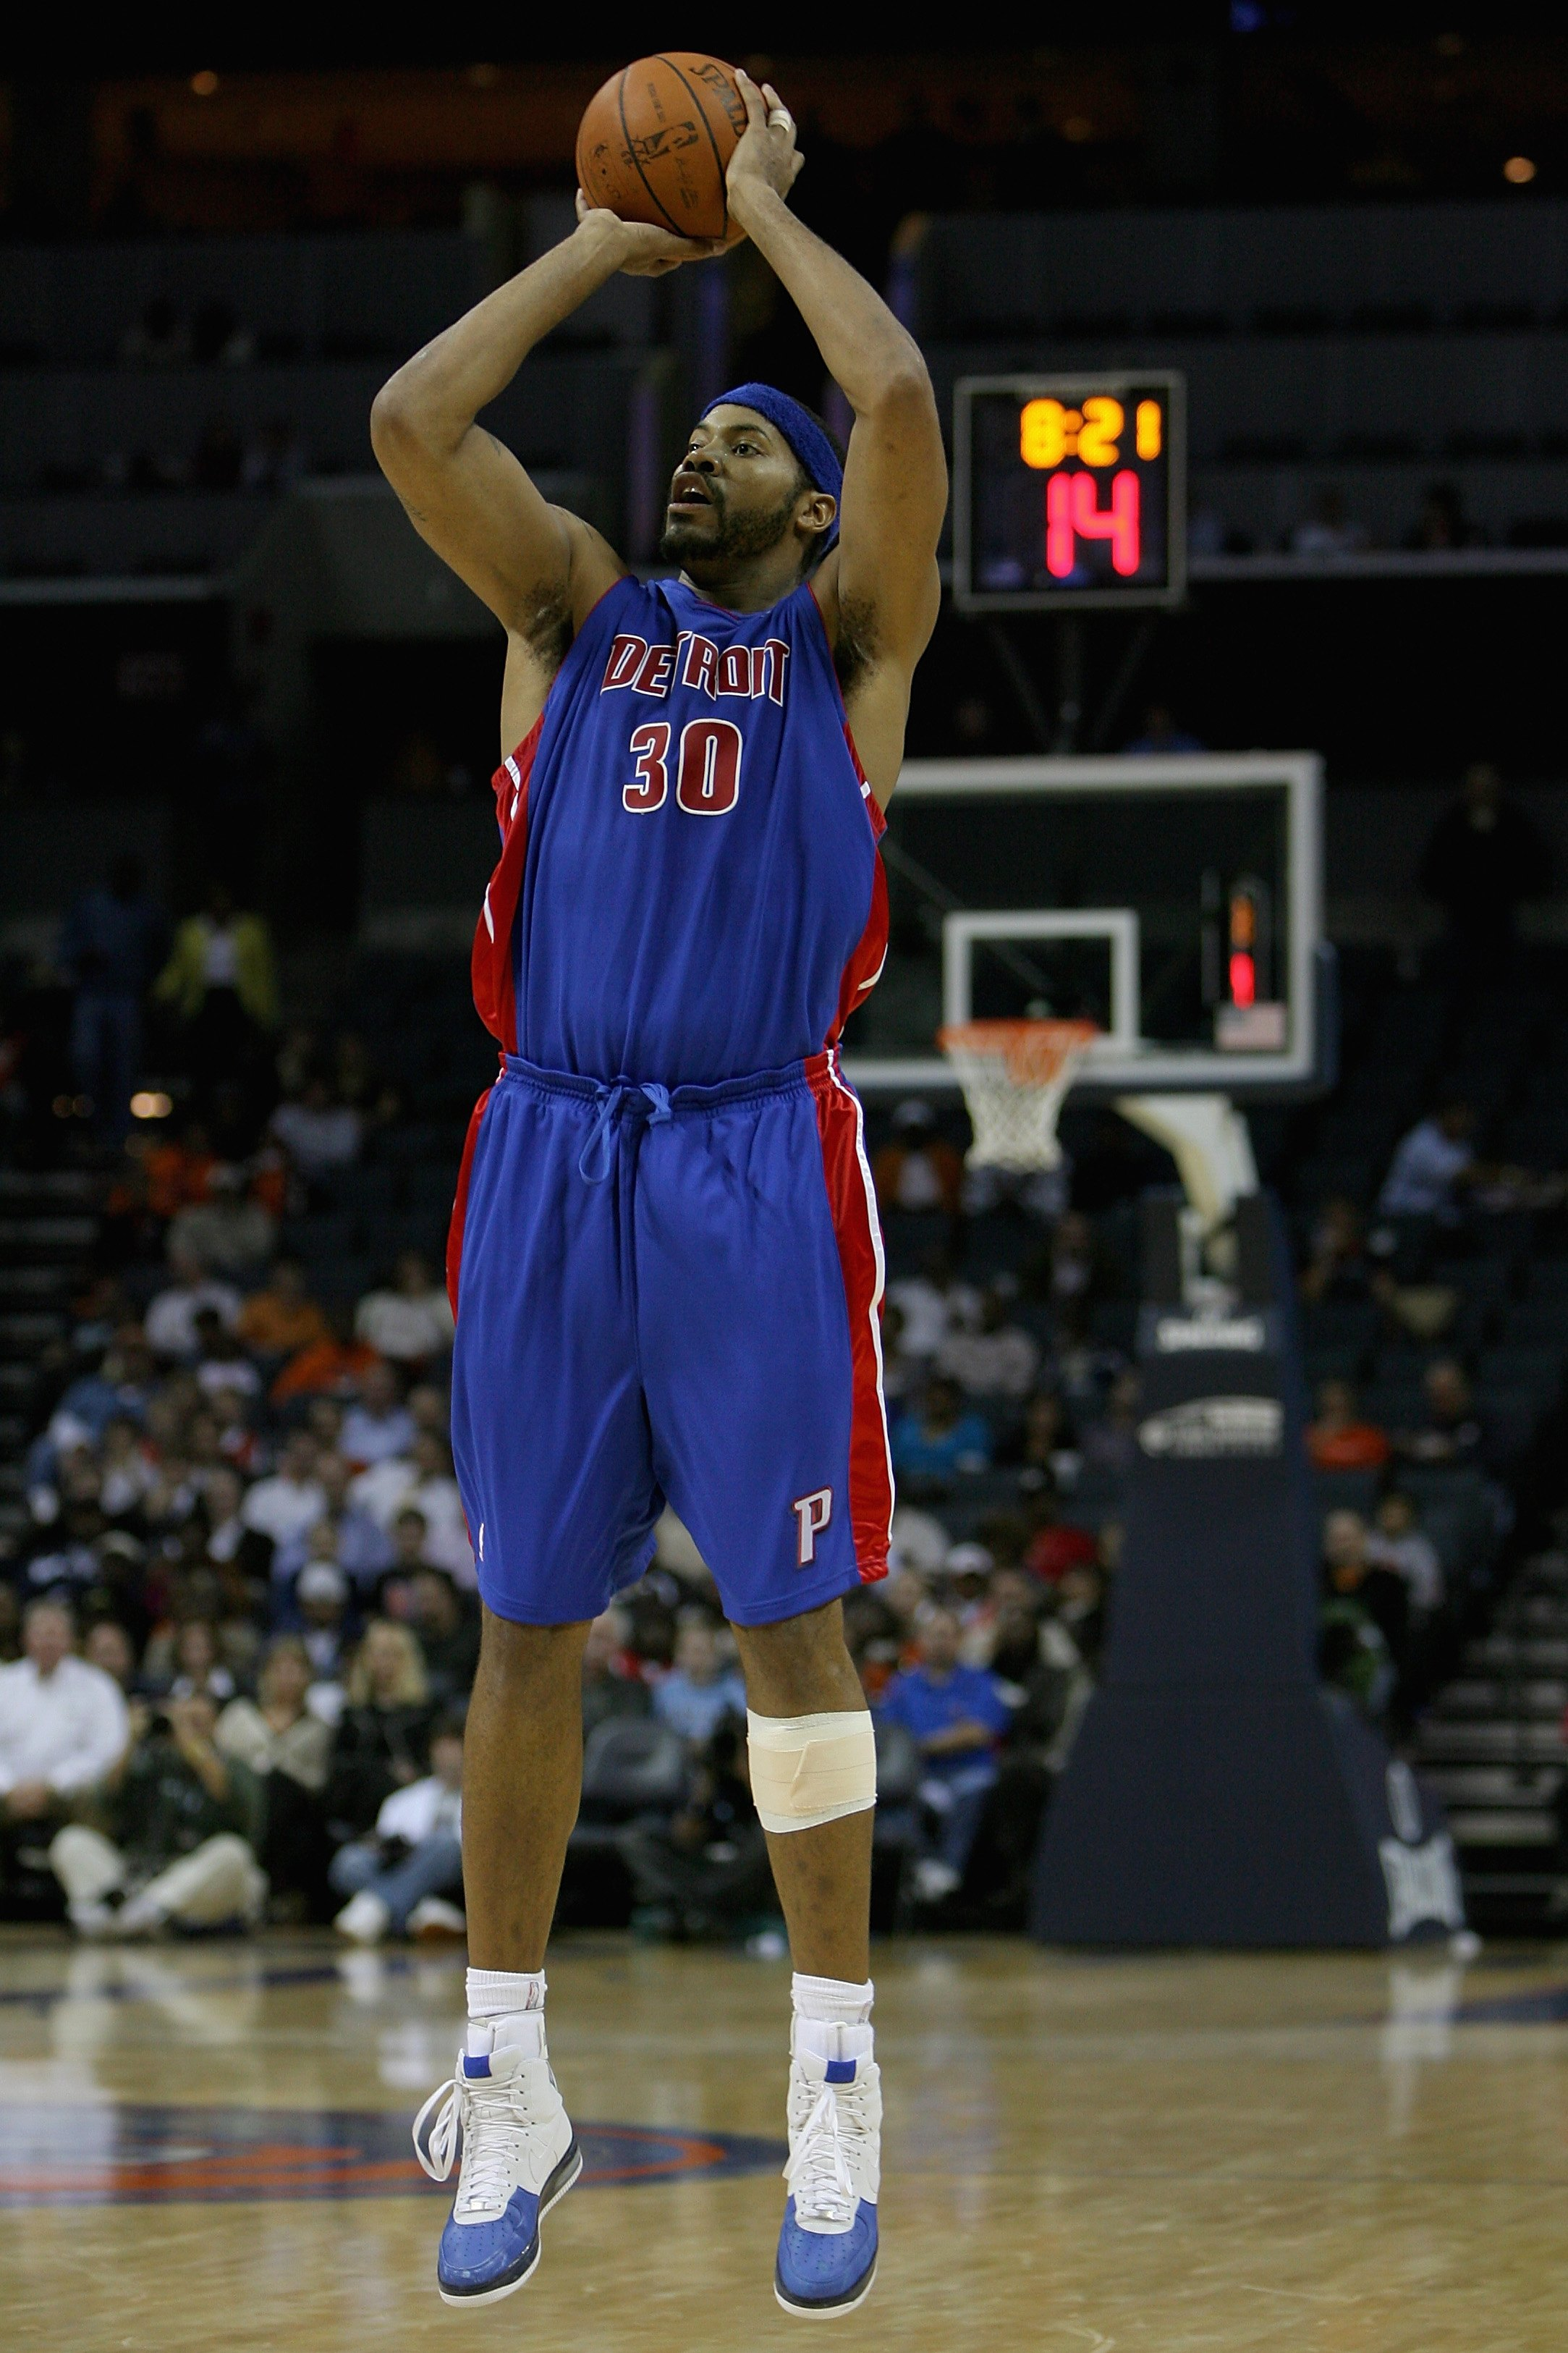 CHARLOTTE, NC - NOVEMBER 3:  Rasheed Wallace #30 of the Detroit Pistons puts a shot up during the game against the Charlotte Bobcats on November 3, 2008 at Time Warner Cable Arena in Charlotte, North Carolina.  The Pistons won 101-83.  NOTE TO USER: User